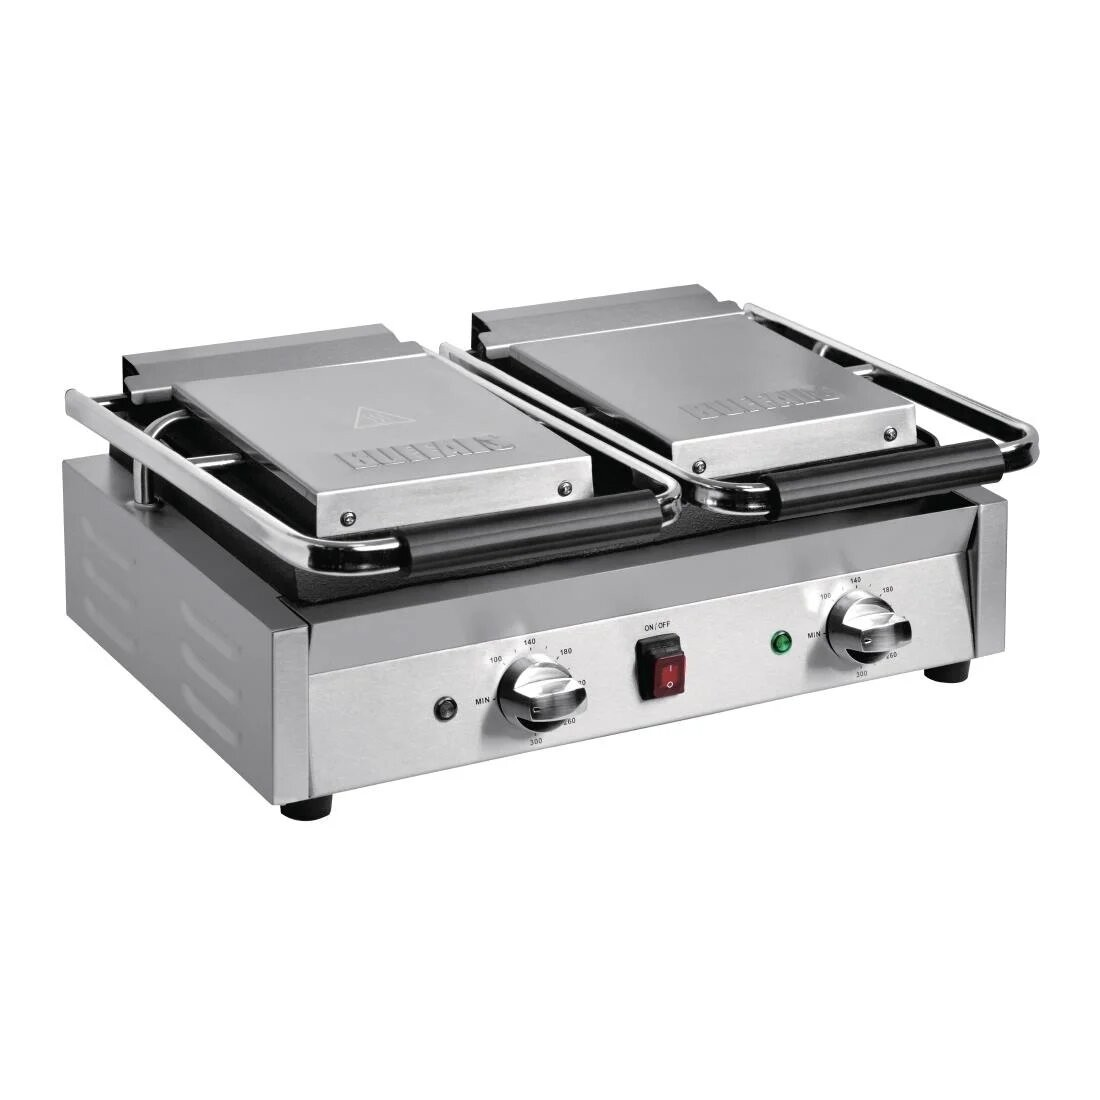 Buffalo DY998 Bistro Double Contact Grill